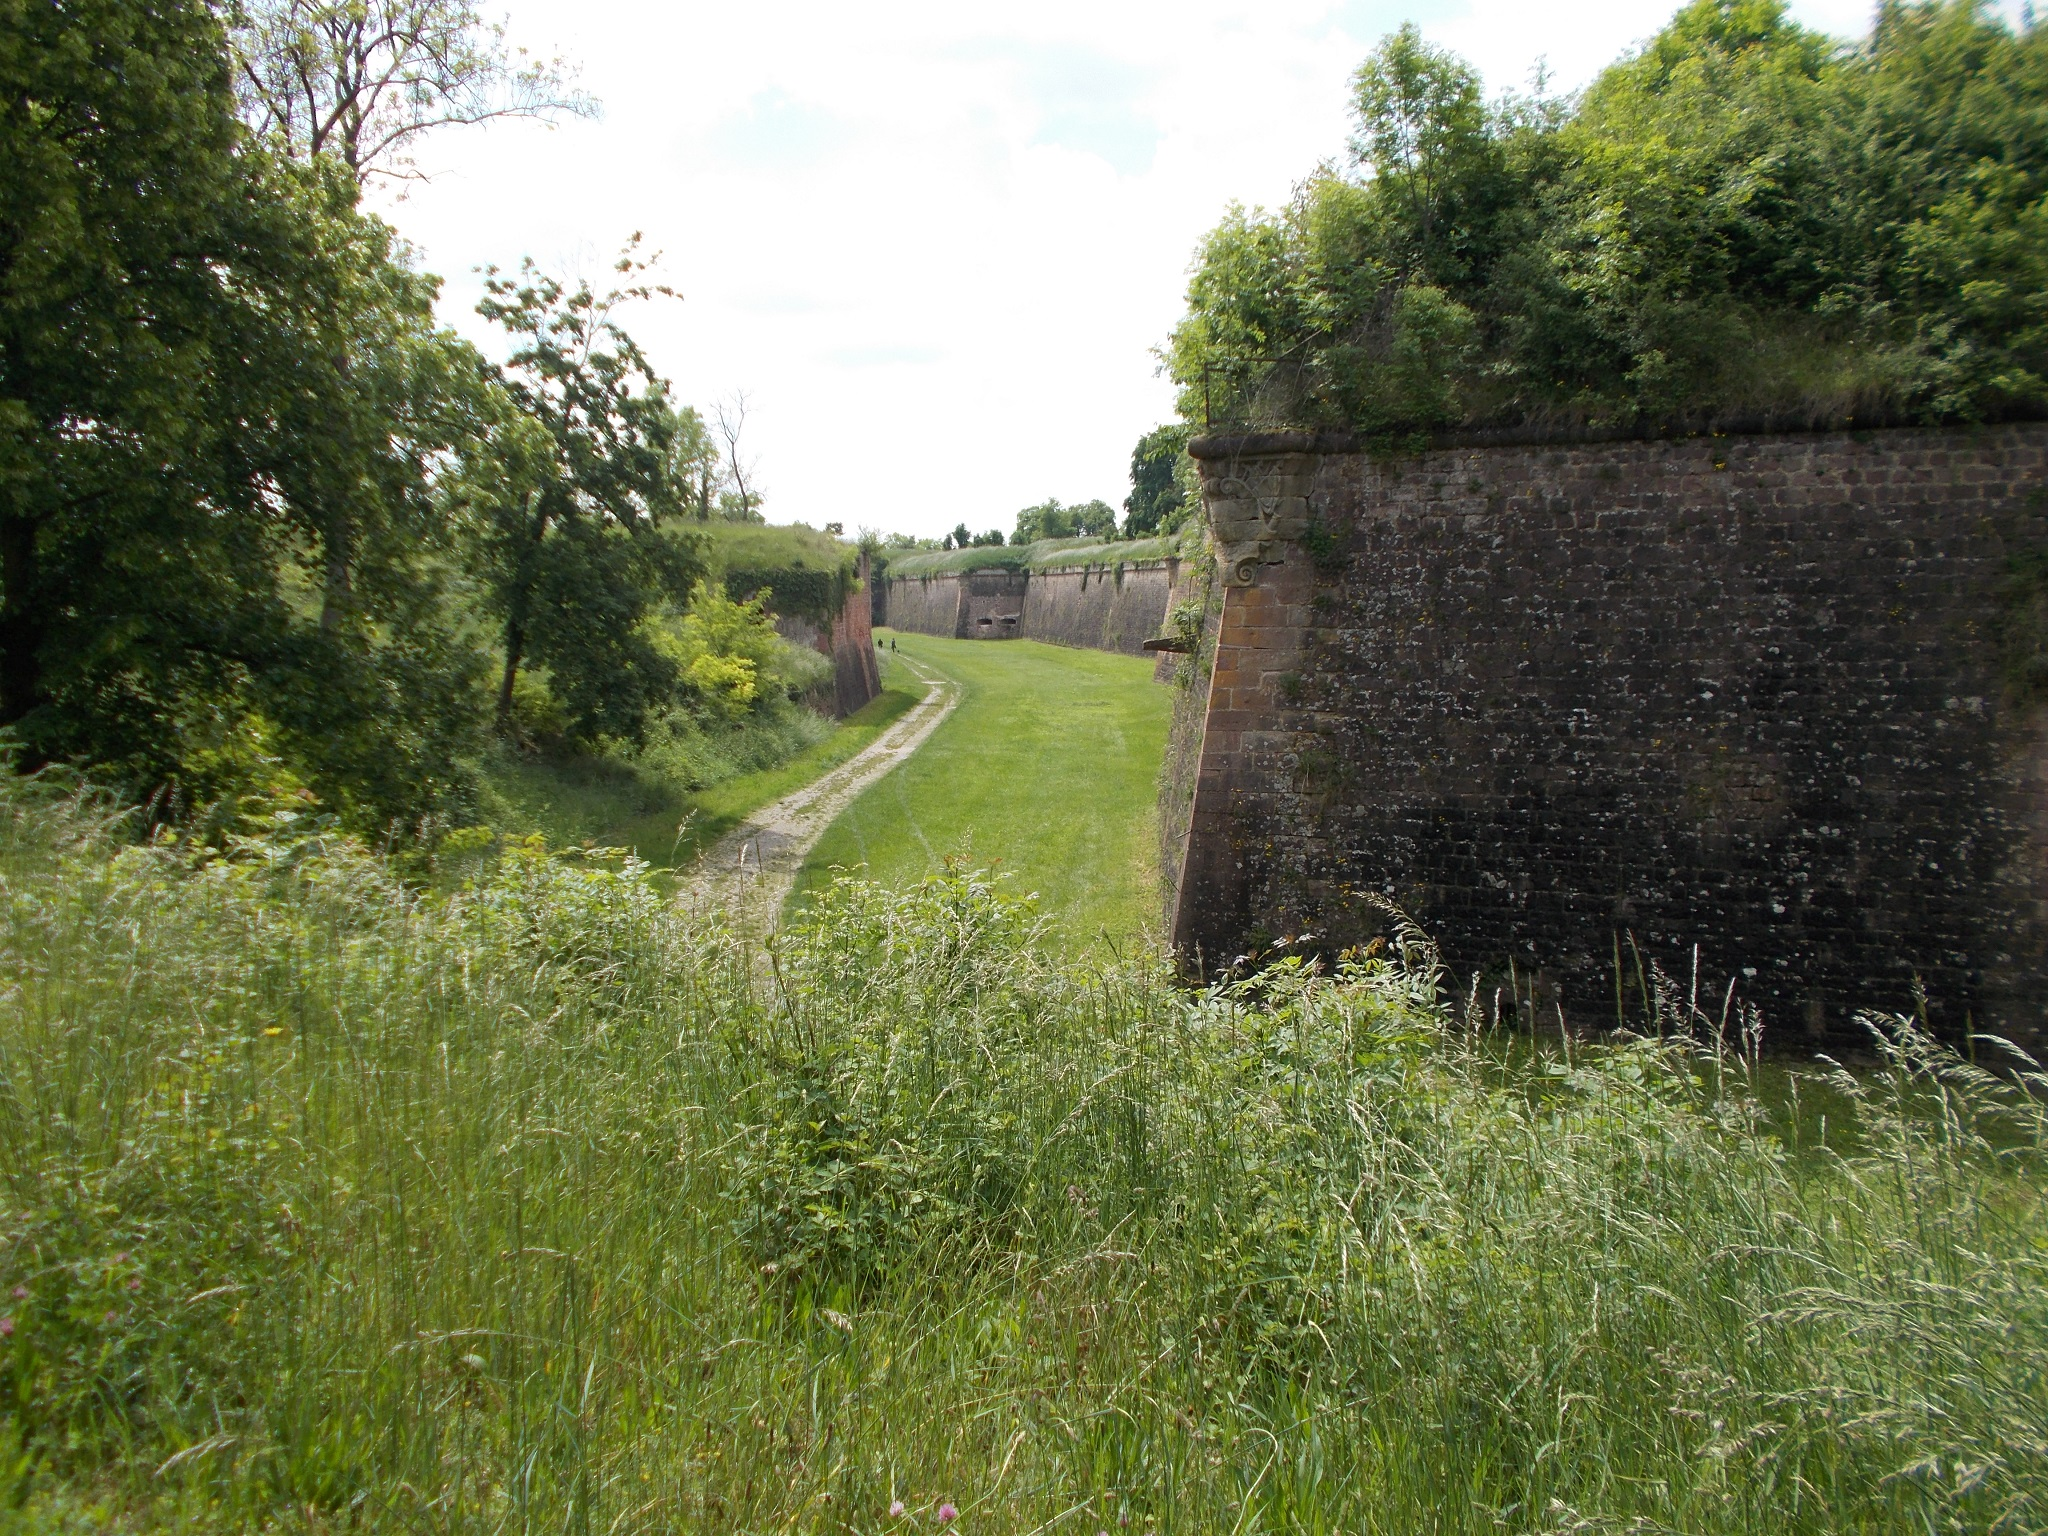 Large brick fortification walls with a grass filled ditch between them. Deep grass in the foreground. Taken in Neuf-Brisach, France.